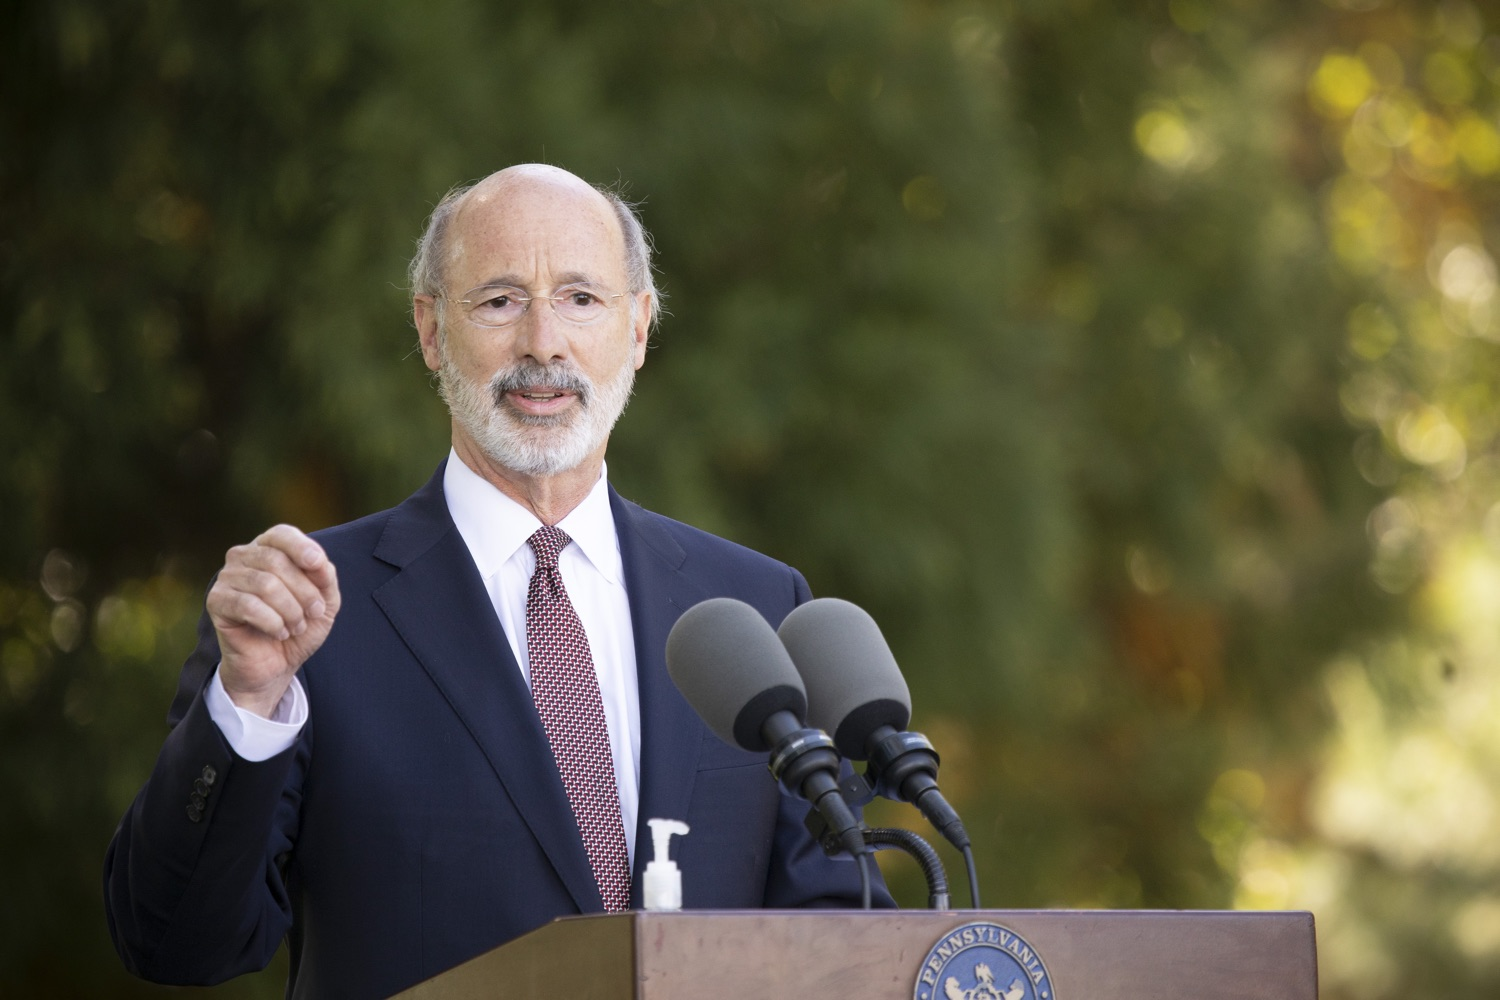 "<a href=""https://filesource.wostreaming.net/commonwealthofpa/photo/18321_gov_aca_dz_006.jpg"" target=""_blank"">⇣ Download Photo<br></a>Pennsylvania Governor Tom Wolf speaking to the press.  As the number of positive COVID-19 cases rise in Pennsylvania and as we enter flu season, protecting the Affordable Care Act (ACA) and ensuring that all Pennsylvanians have access to health coverage are more important than ever, Governor Tom Wolf said today in Chester County. The governor was joined by local elected officials and representatives from local health care organizations. Landenberg, PA  October 15, 2020"